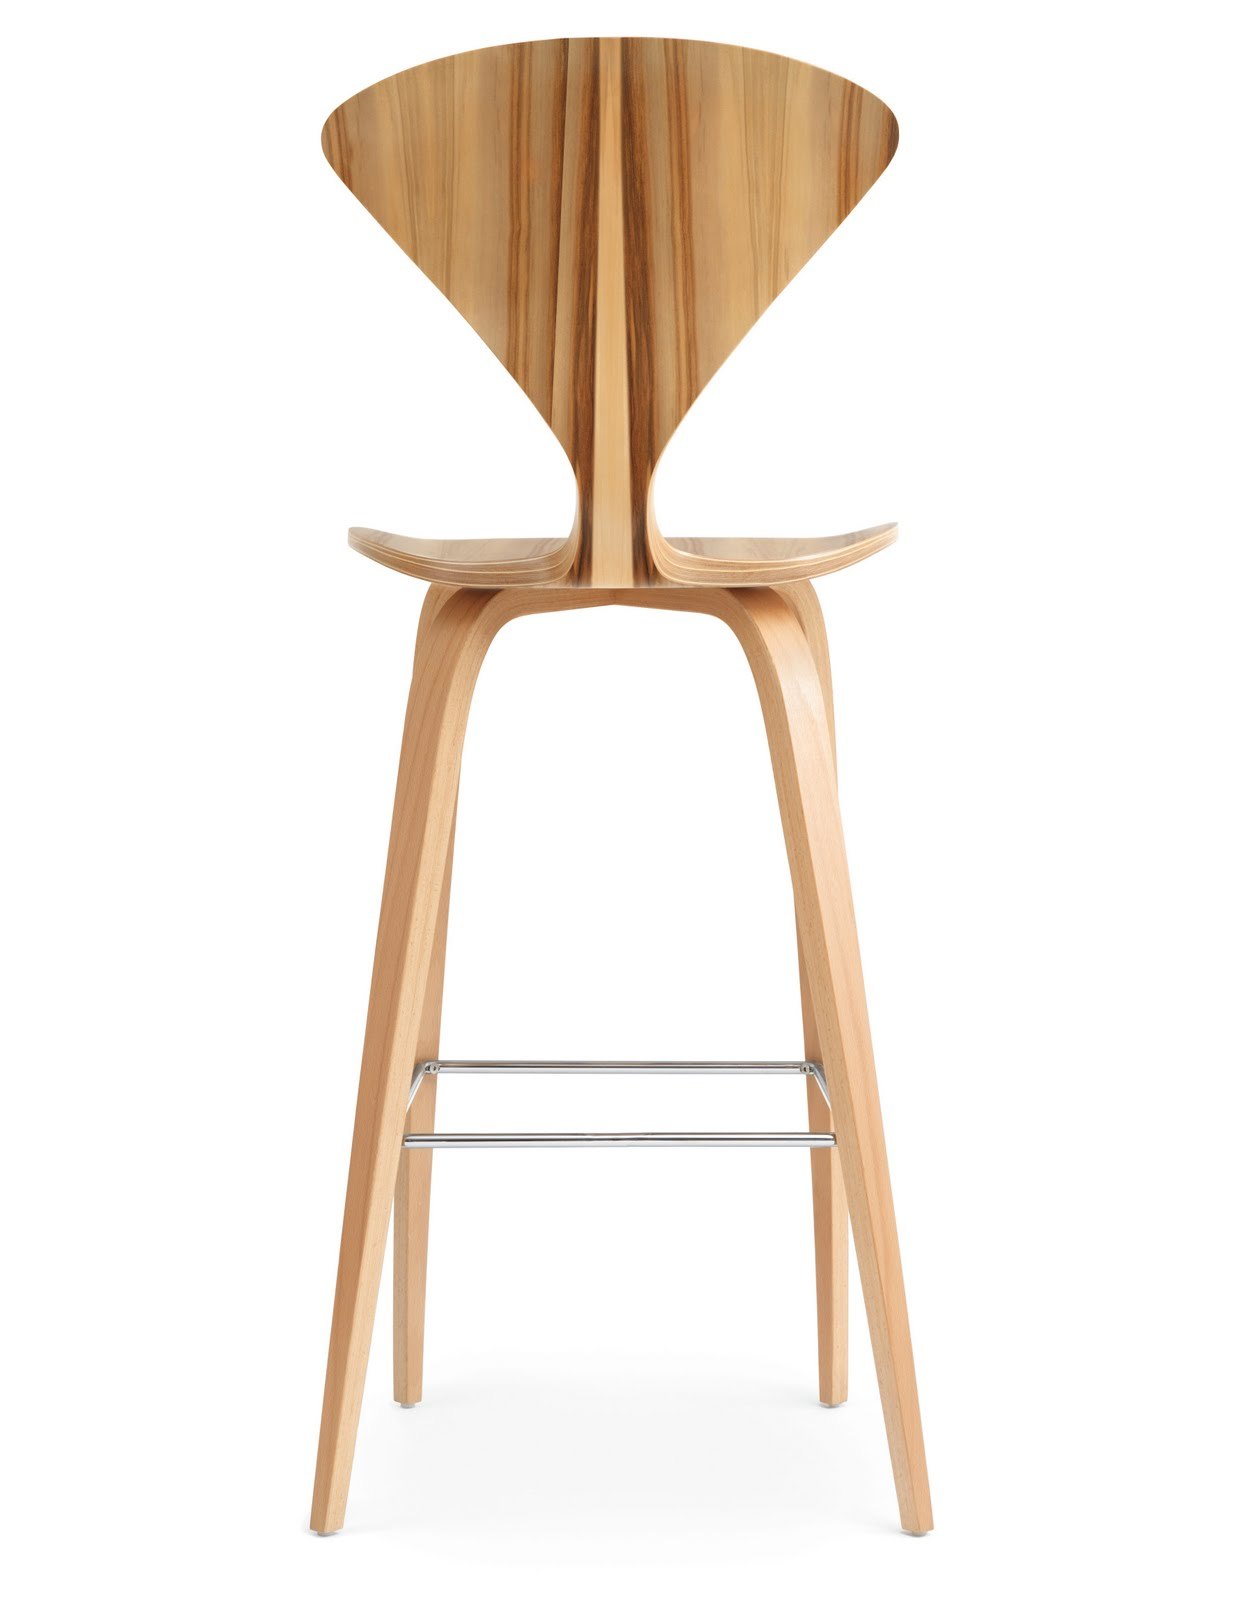 Modern Counter Height Stools Cherner Red Gum Wood Base Modern Bar Or Counter Stool Height